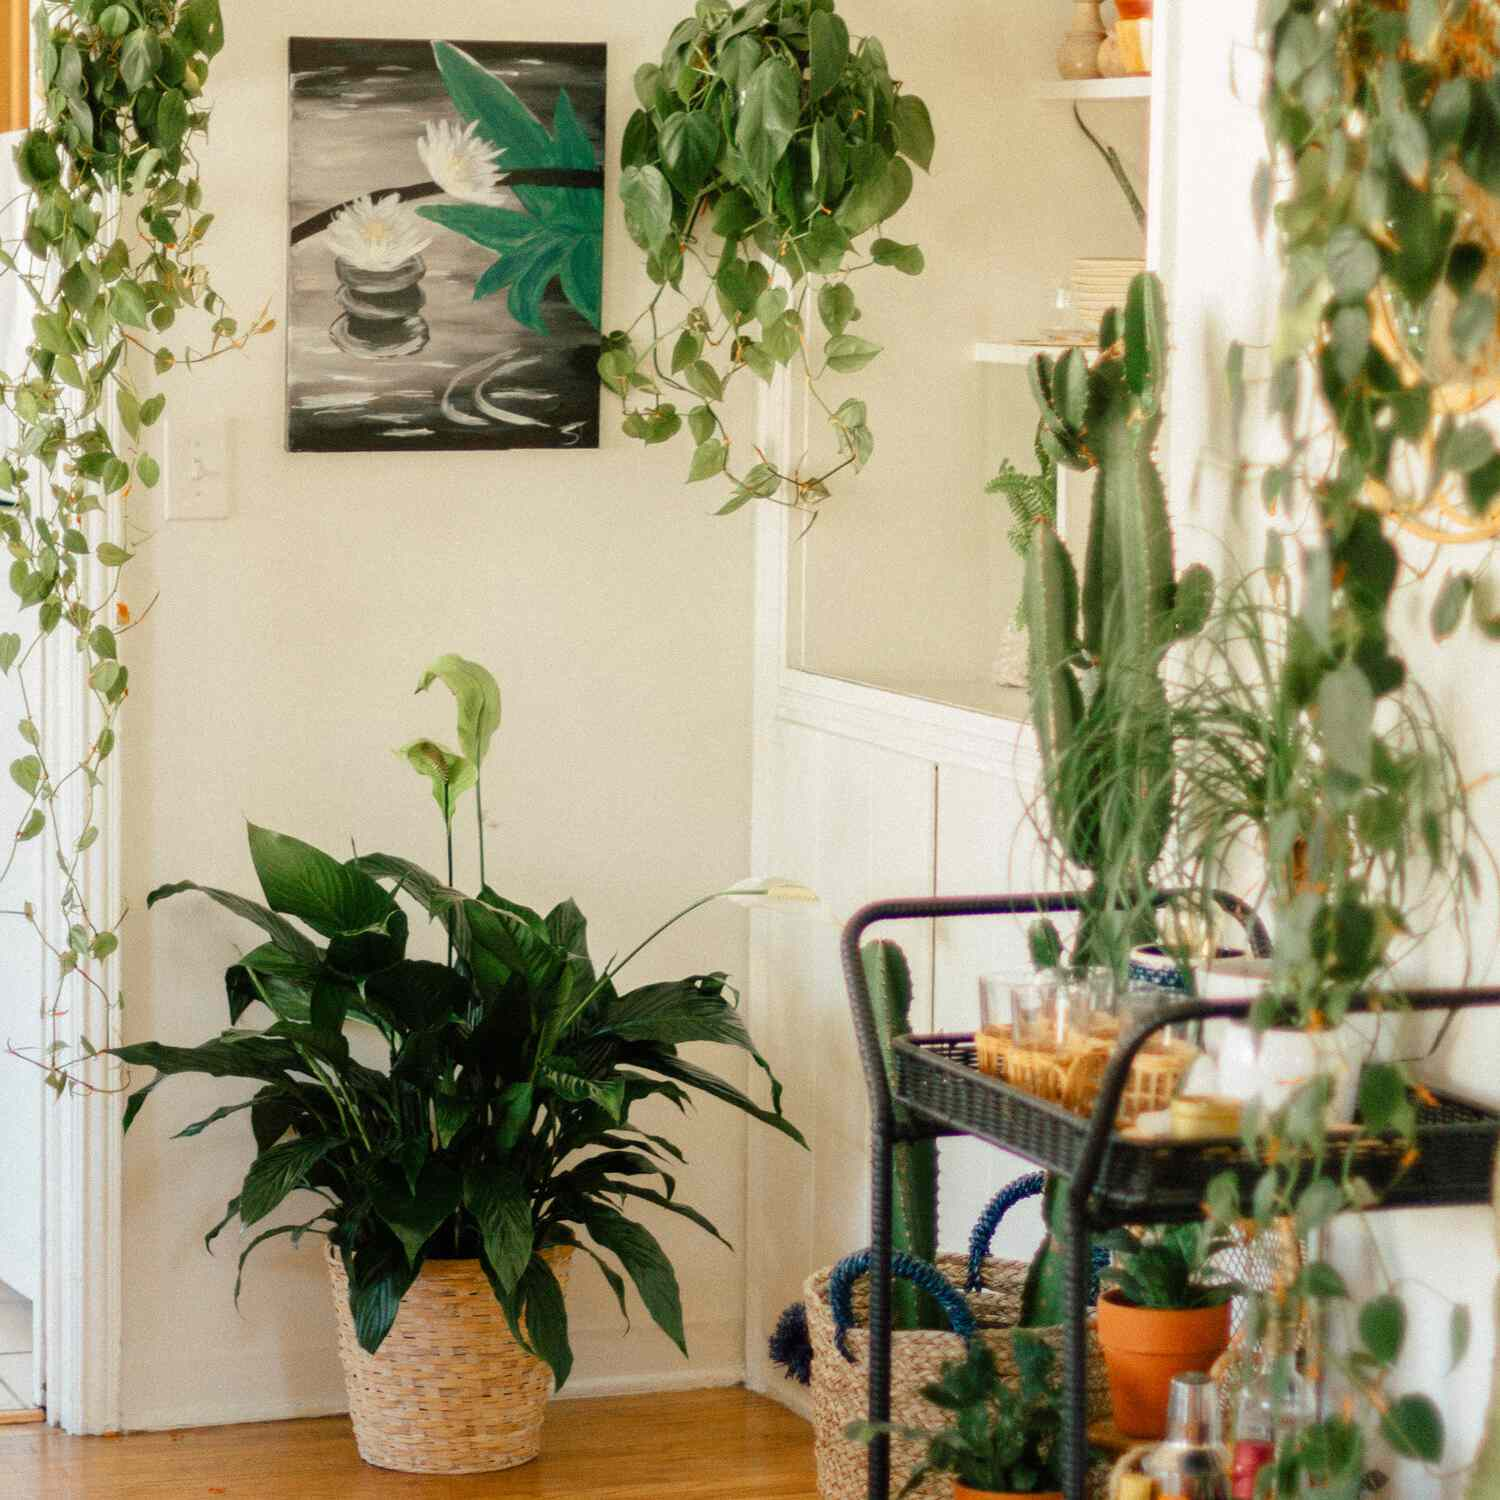 Peace lily in a basket in the corner of a room